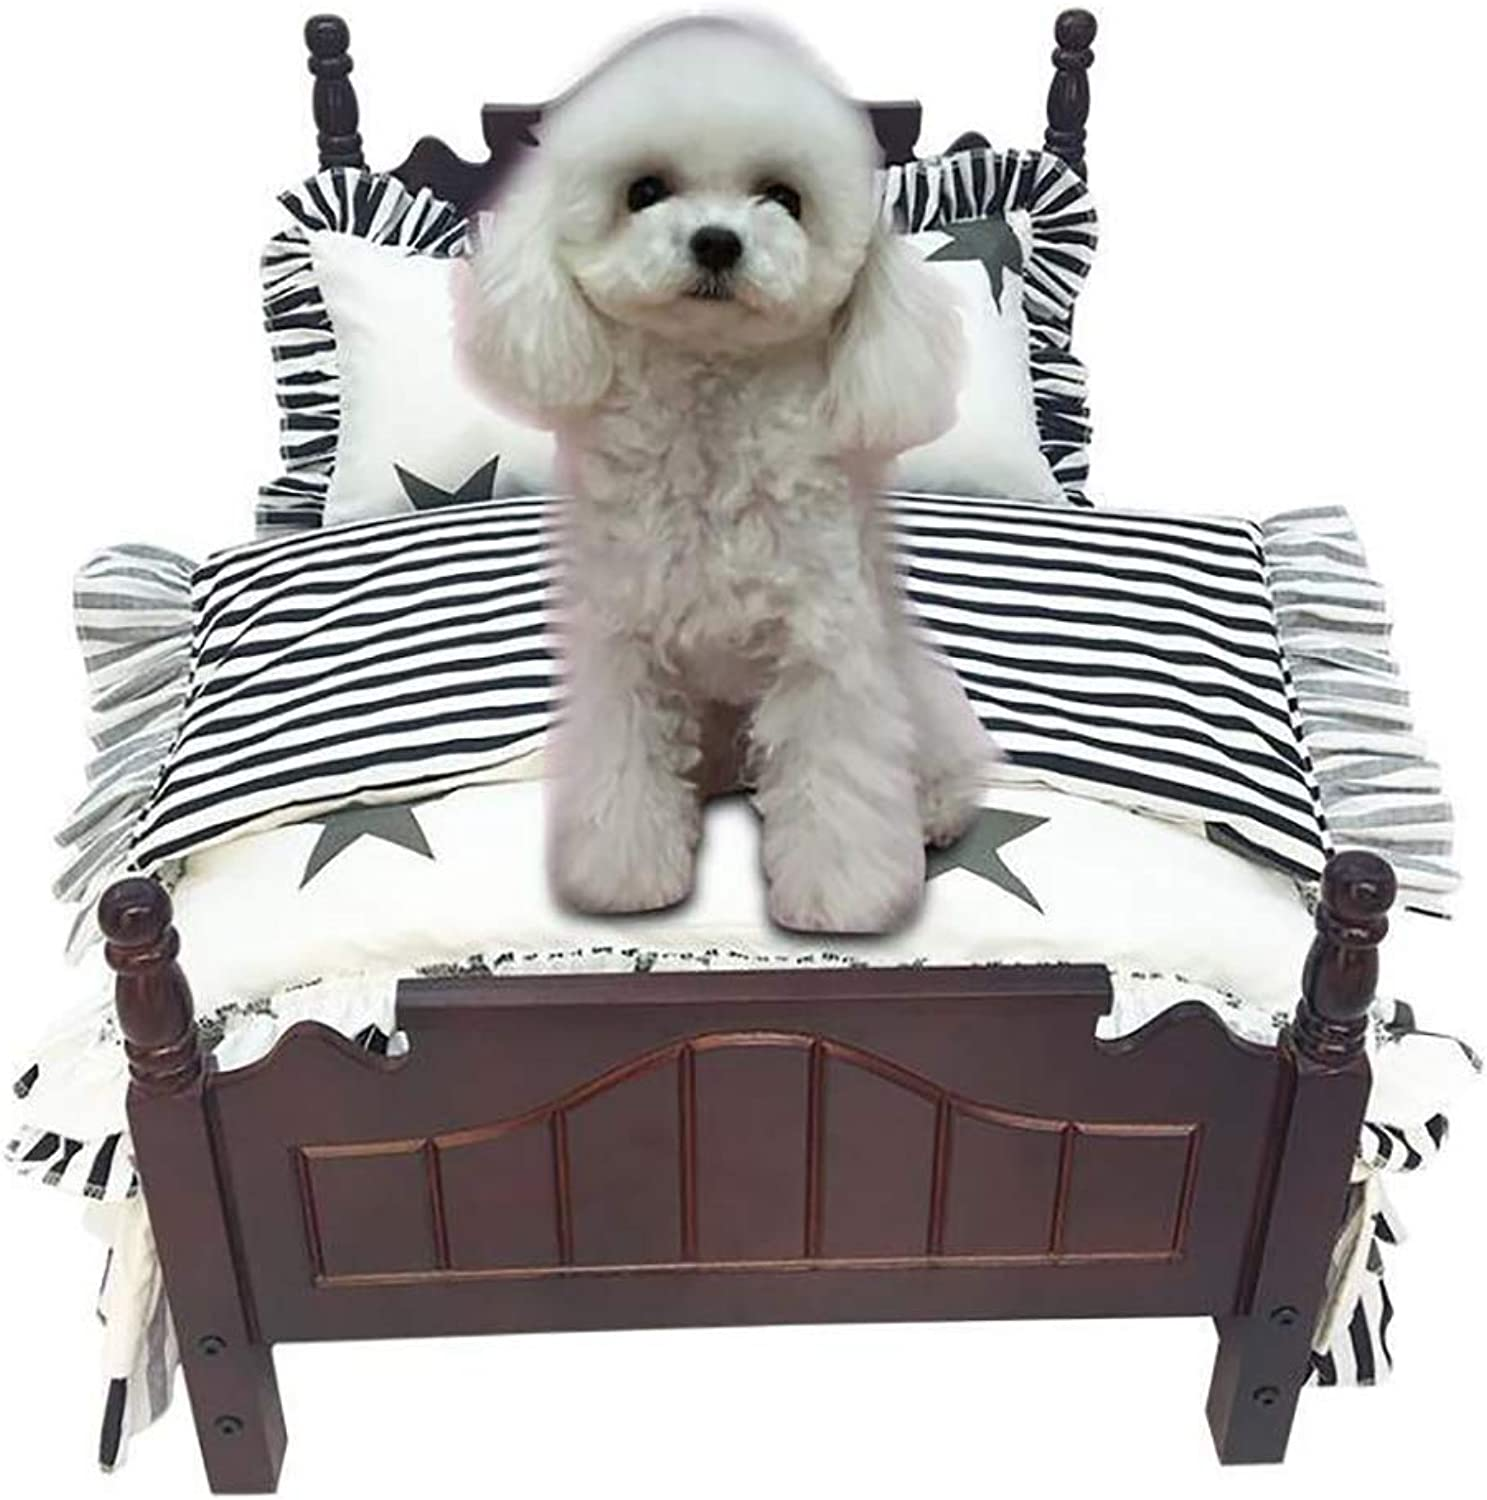 Deluxe Dog bed, Teddy Princess bed Pet nest Durable Kennel, Soft Cozy Pet beddingB L